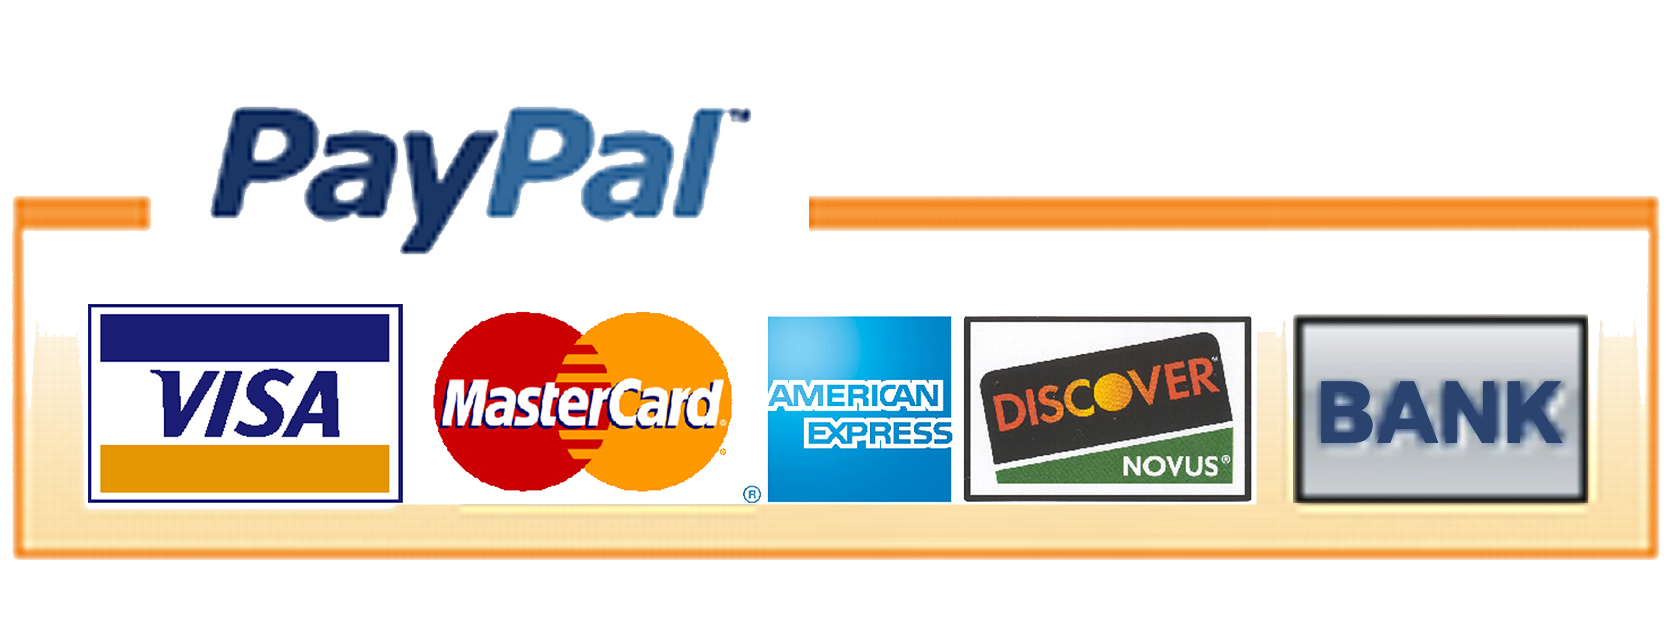 paypal-credit-cards